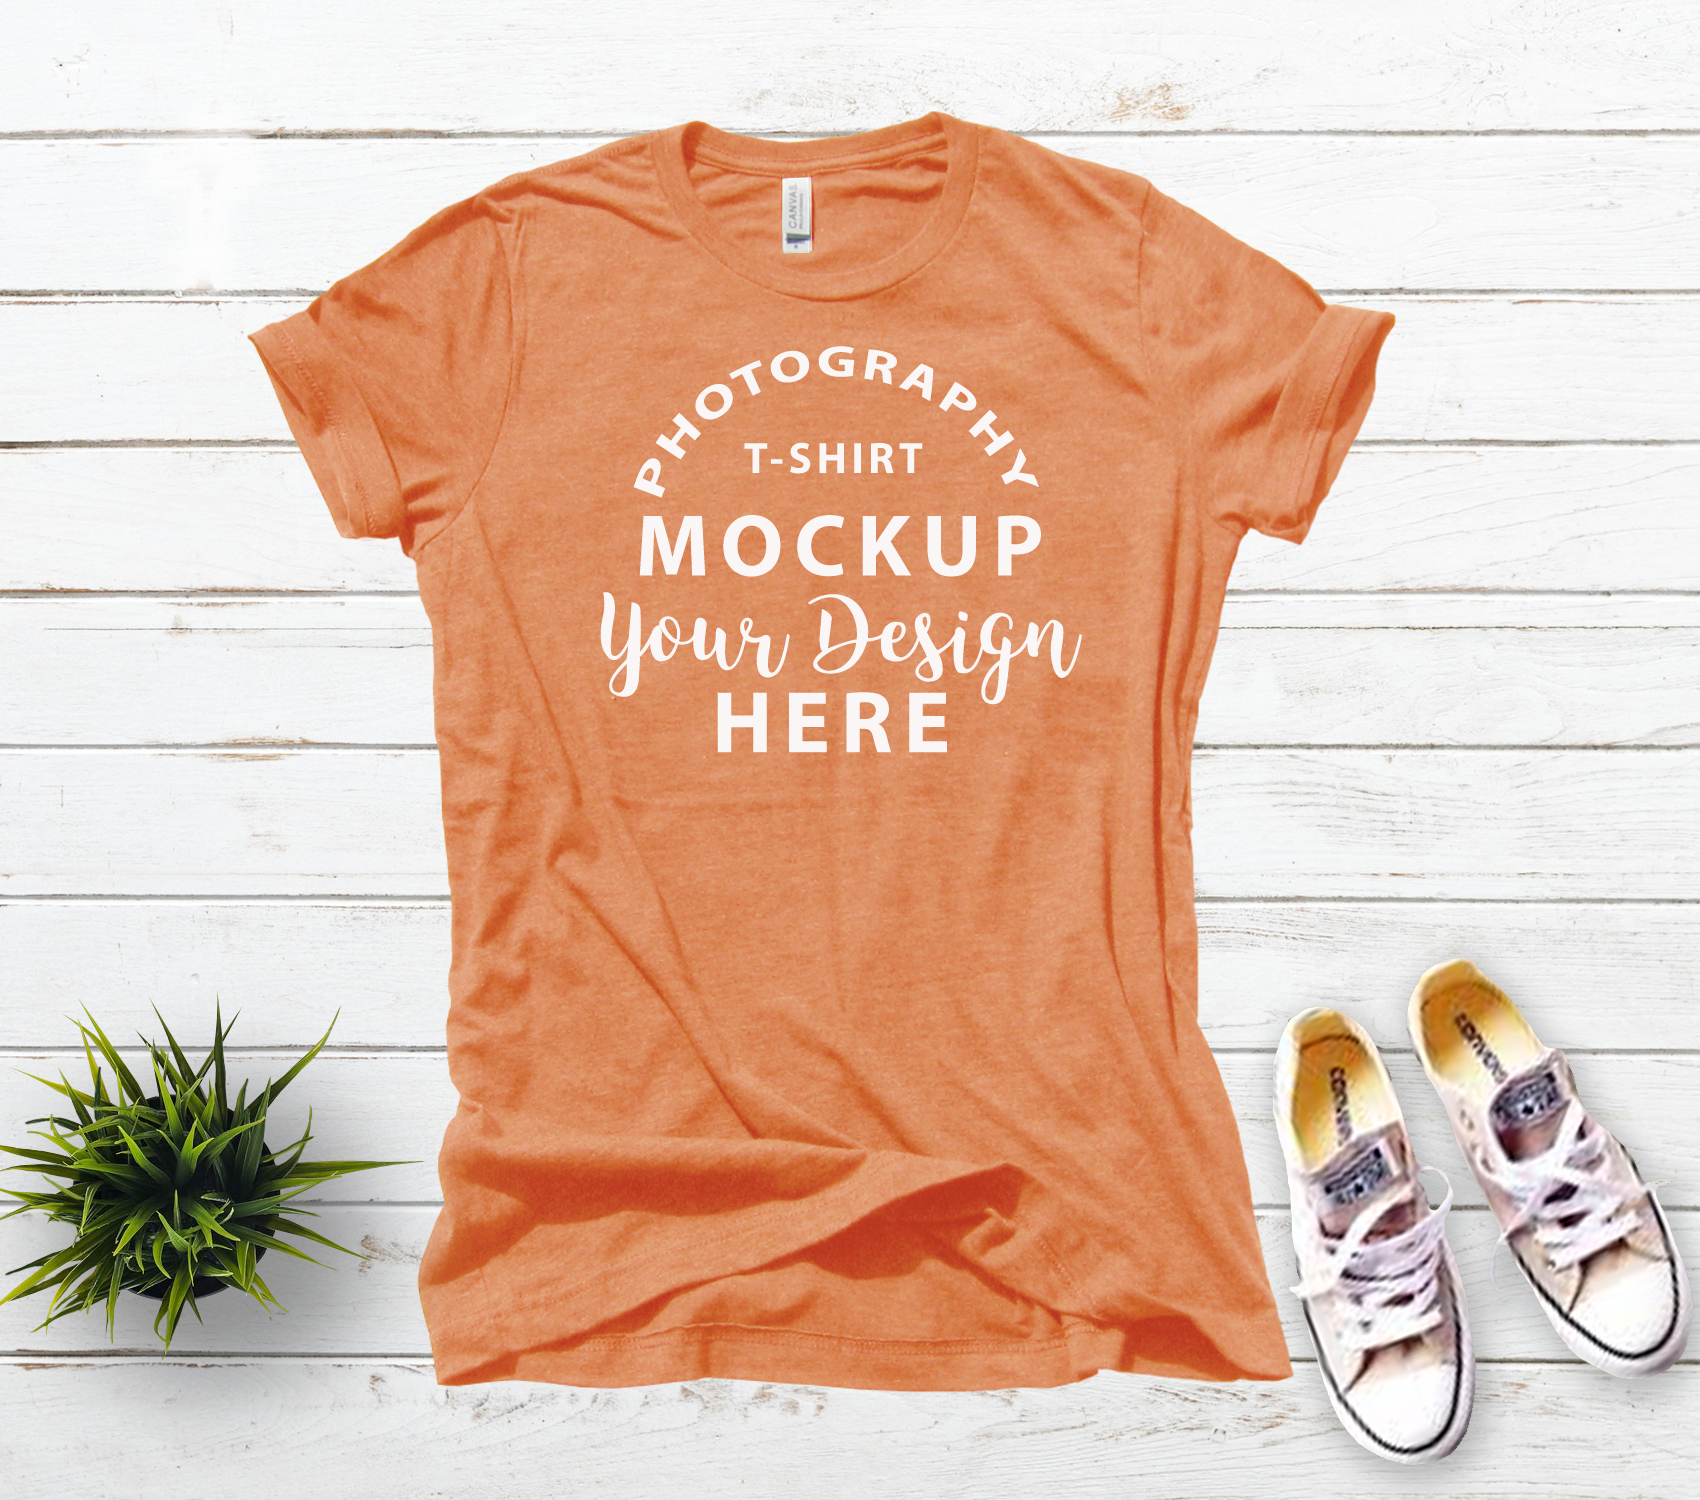 Bella Canvas 3001 T-shirt mock-up, color Heather Orange example image 2